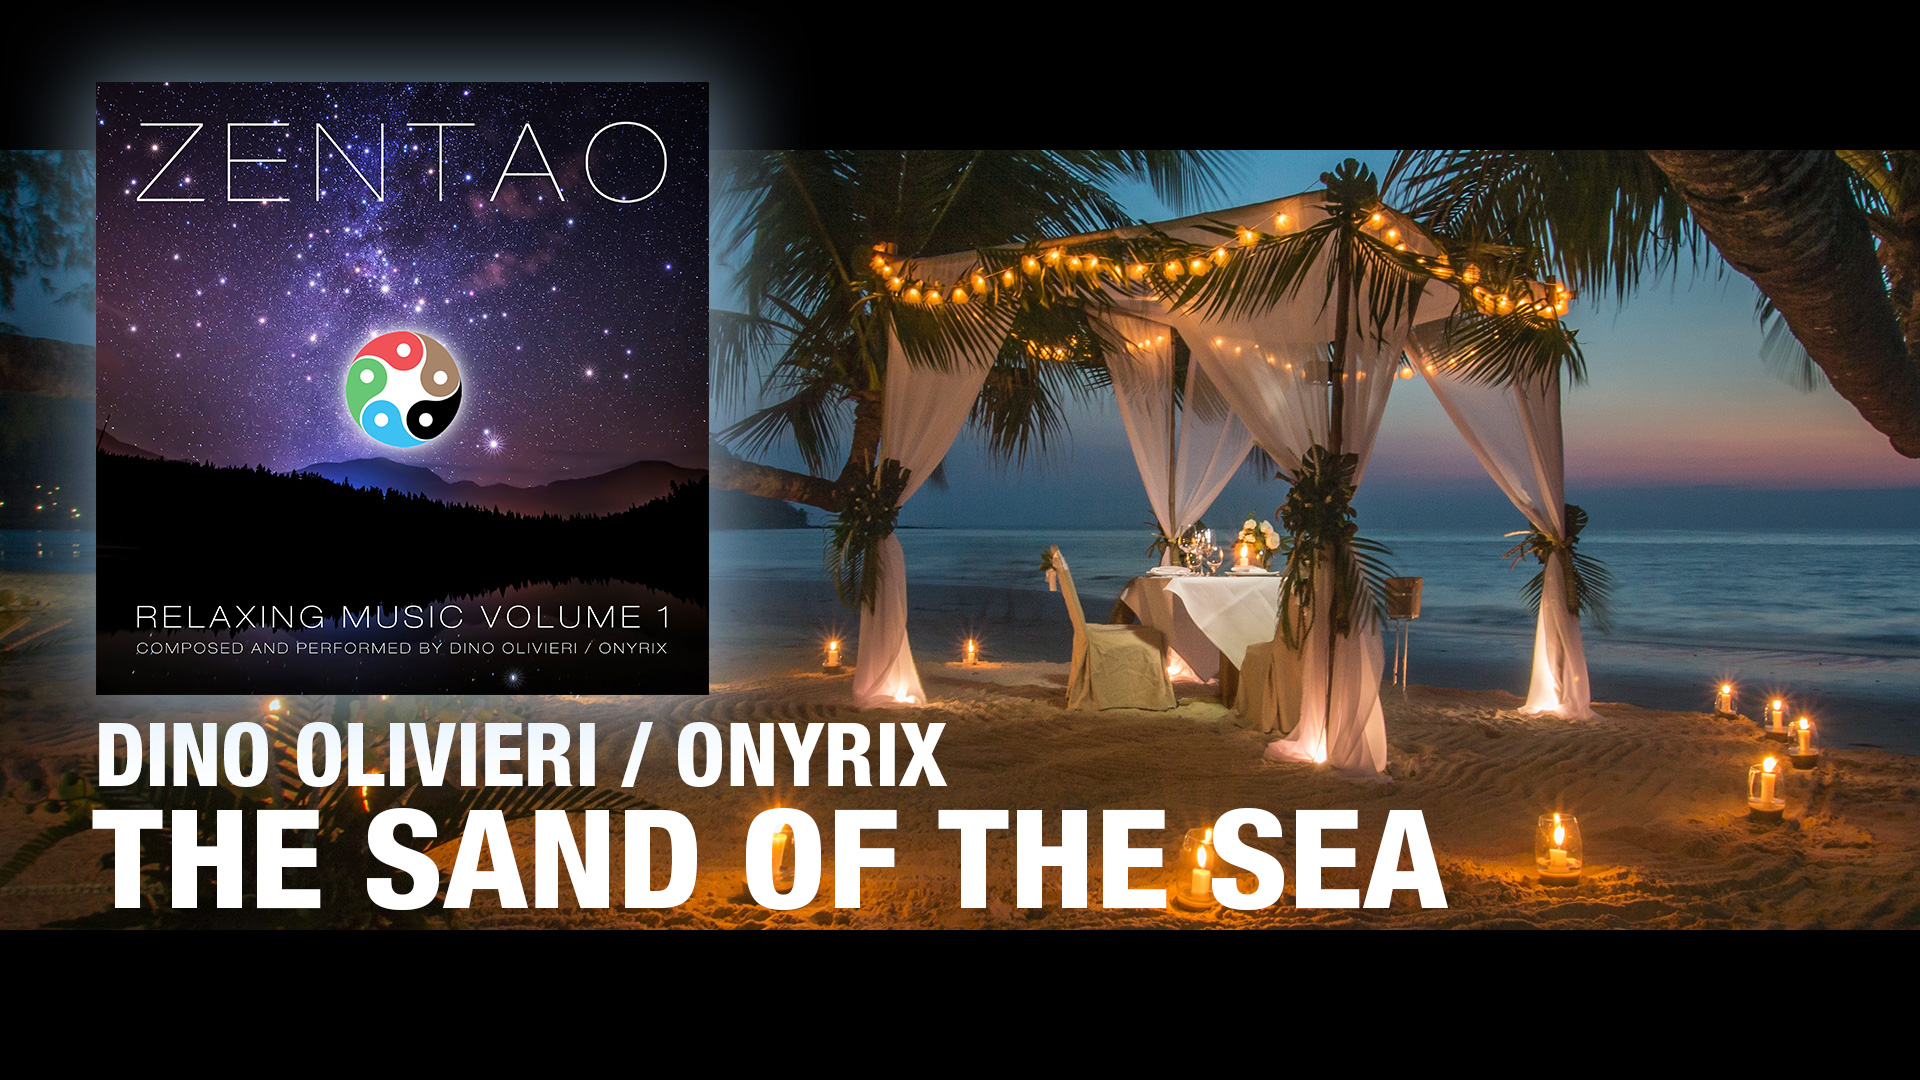 The Sand of the Sea - ZENTAO Relaxing Music Volume 1 by Dino Olivieri